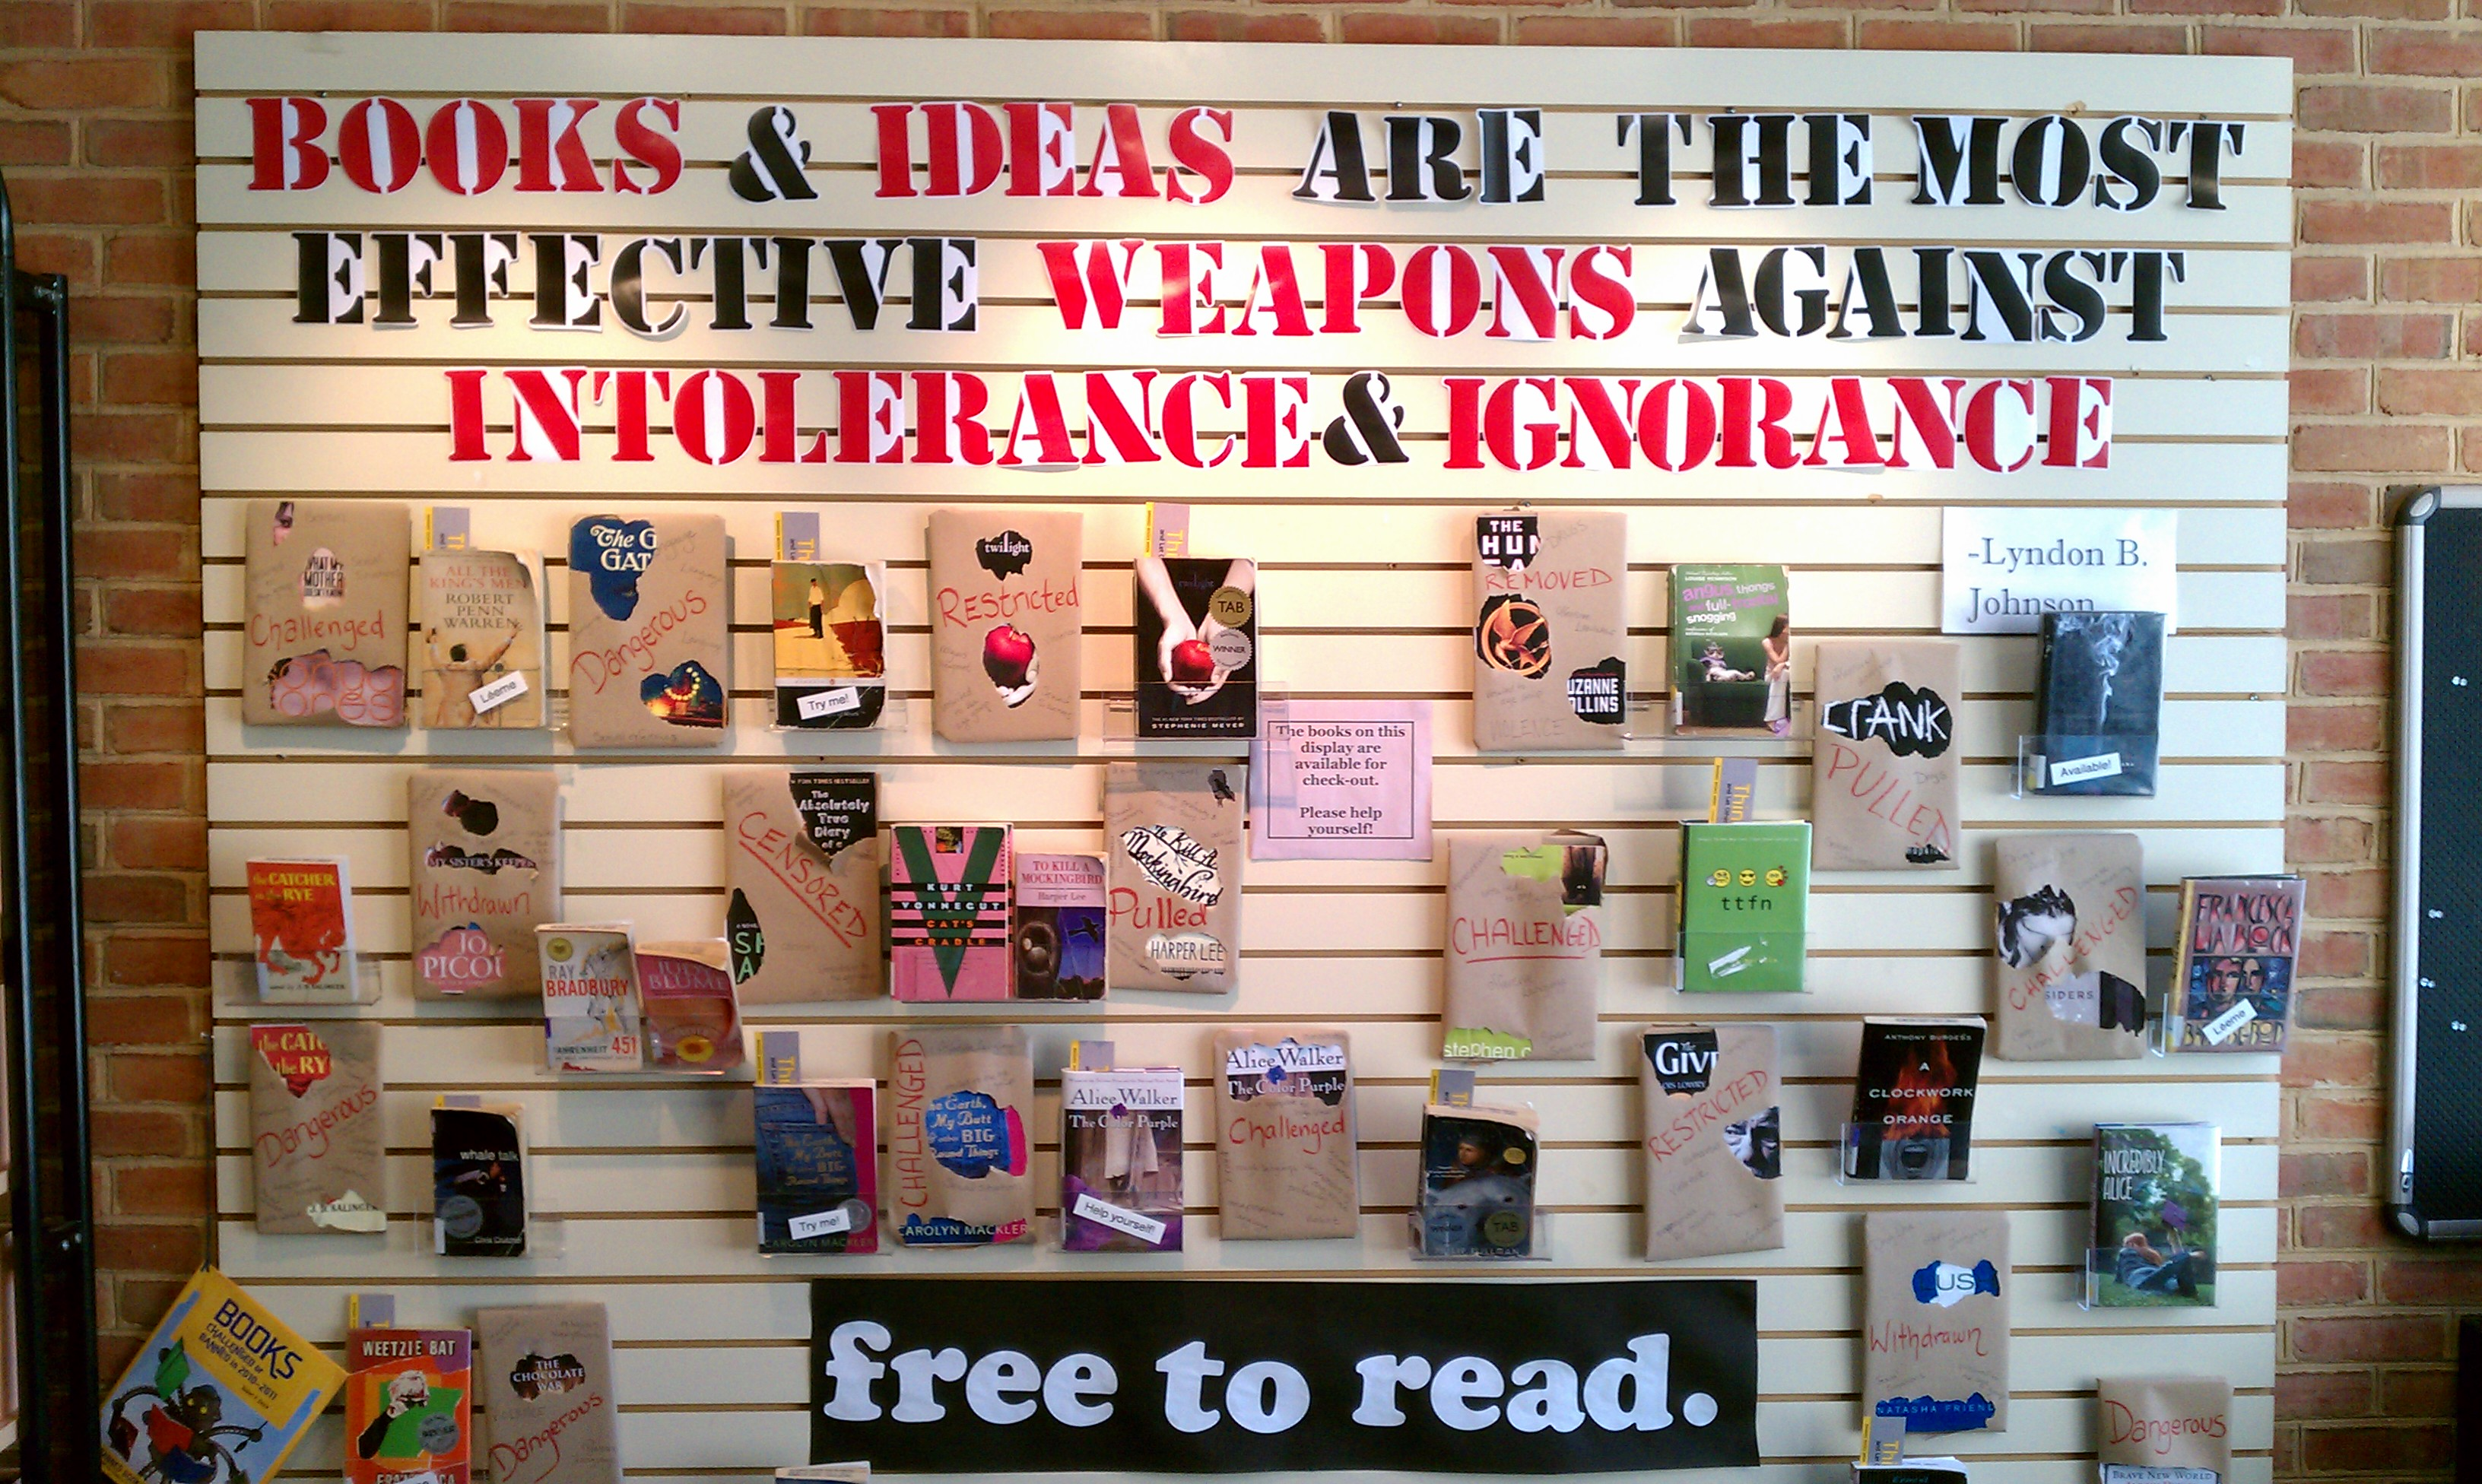 A youth services display at Arlington (Va. ) Public Library conveys a message to patrons.